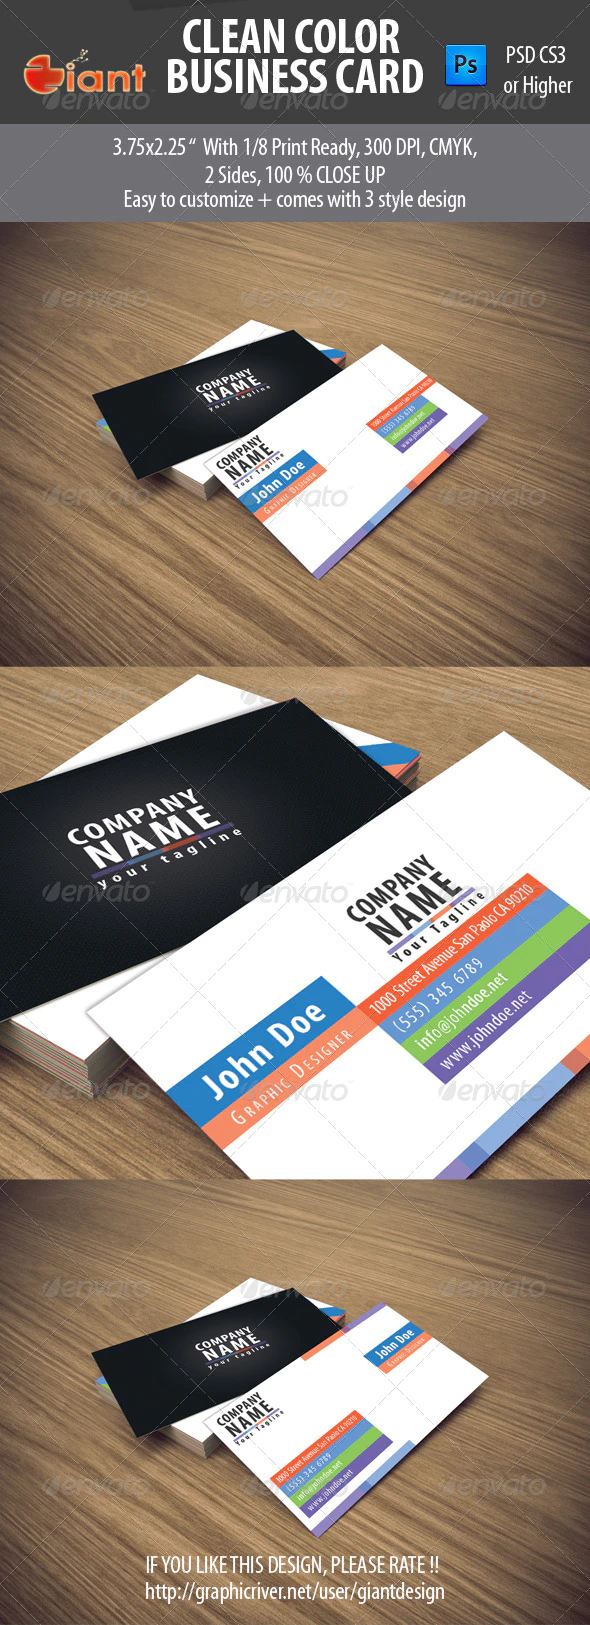 Clean Color Business Card by giantdesign | GraphicRiver ...